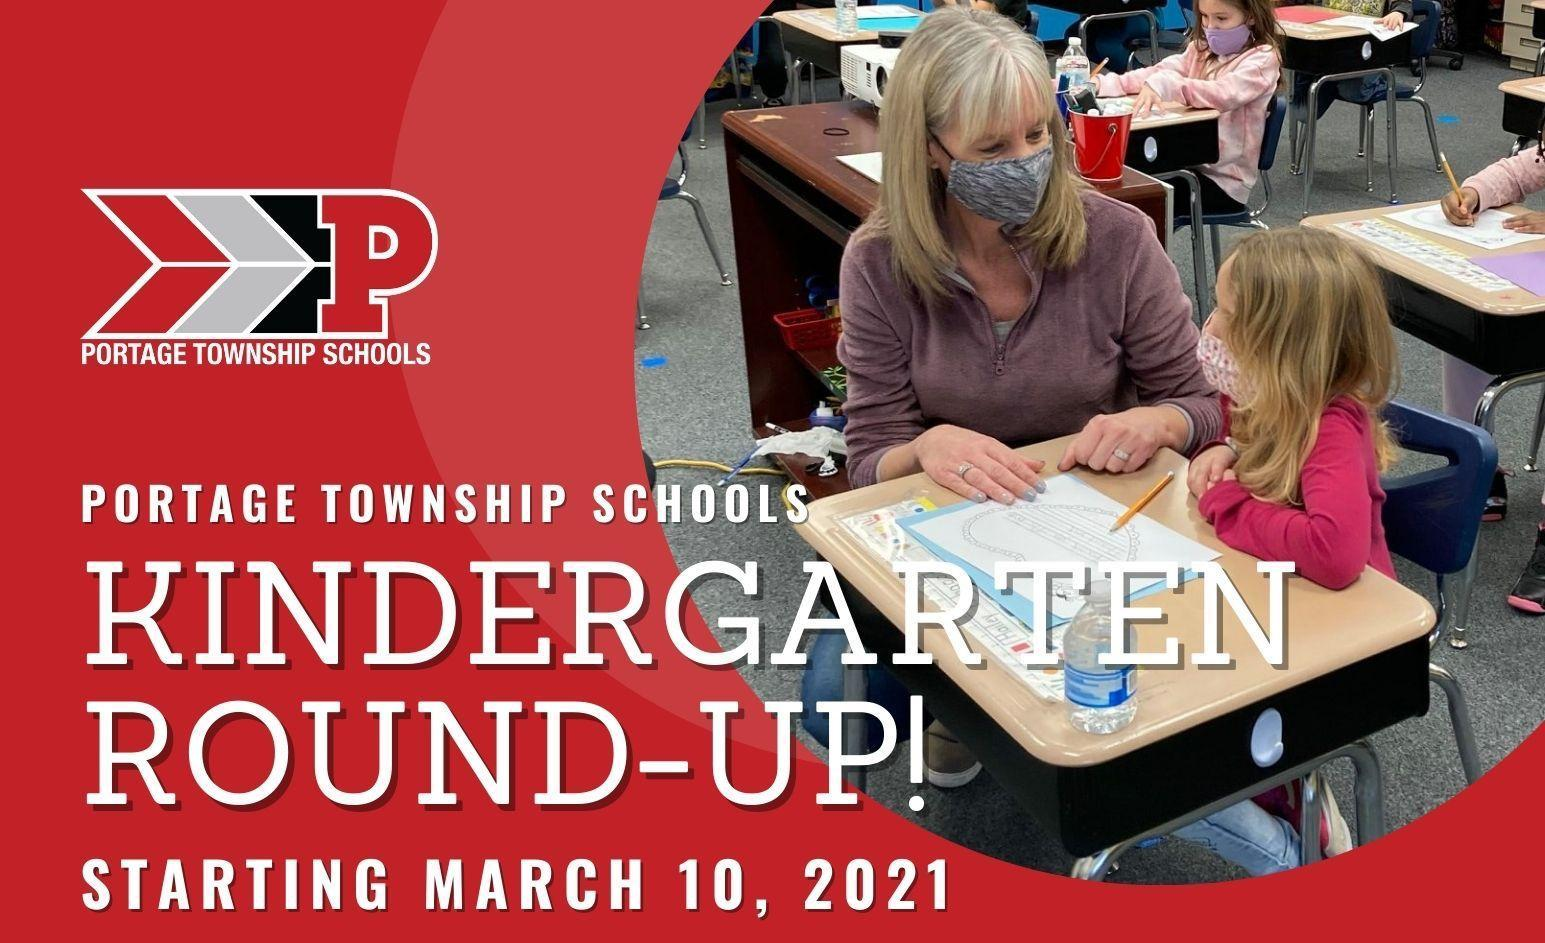 Portage Township Schools Kindergarten Round-Up graphic with photo of teacher helping student at desk